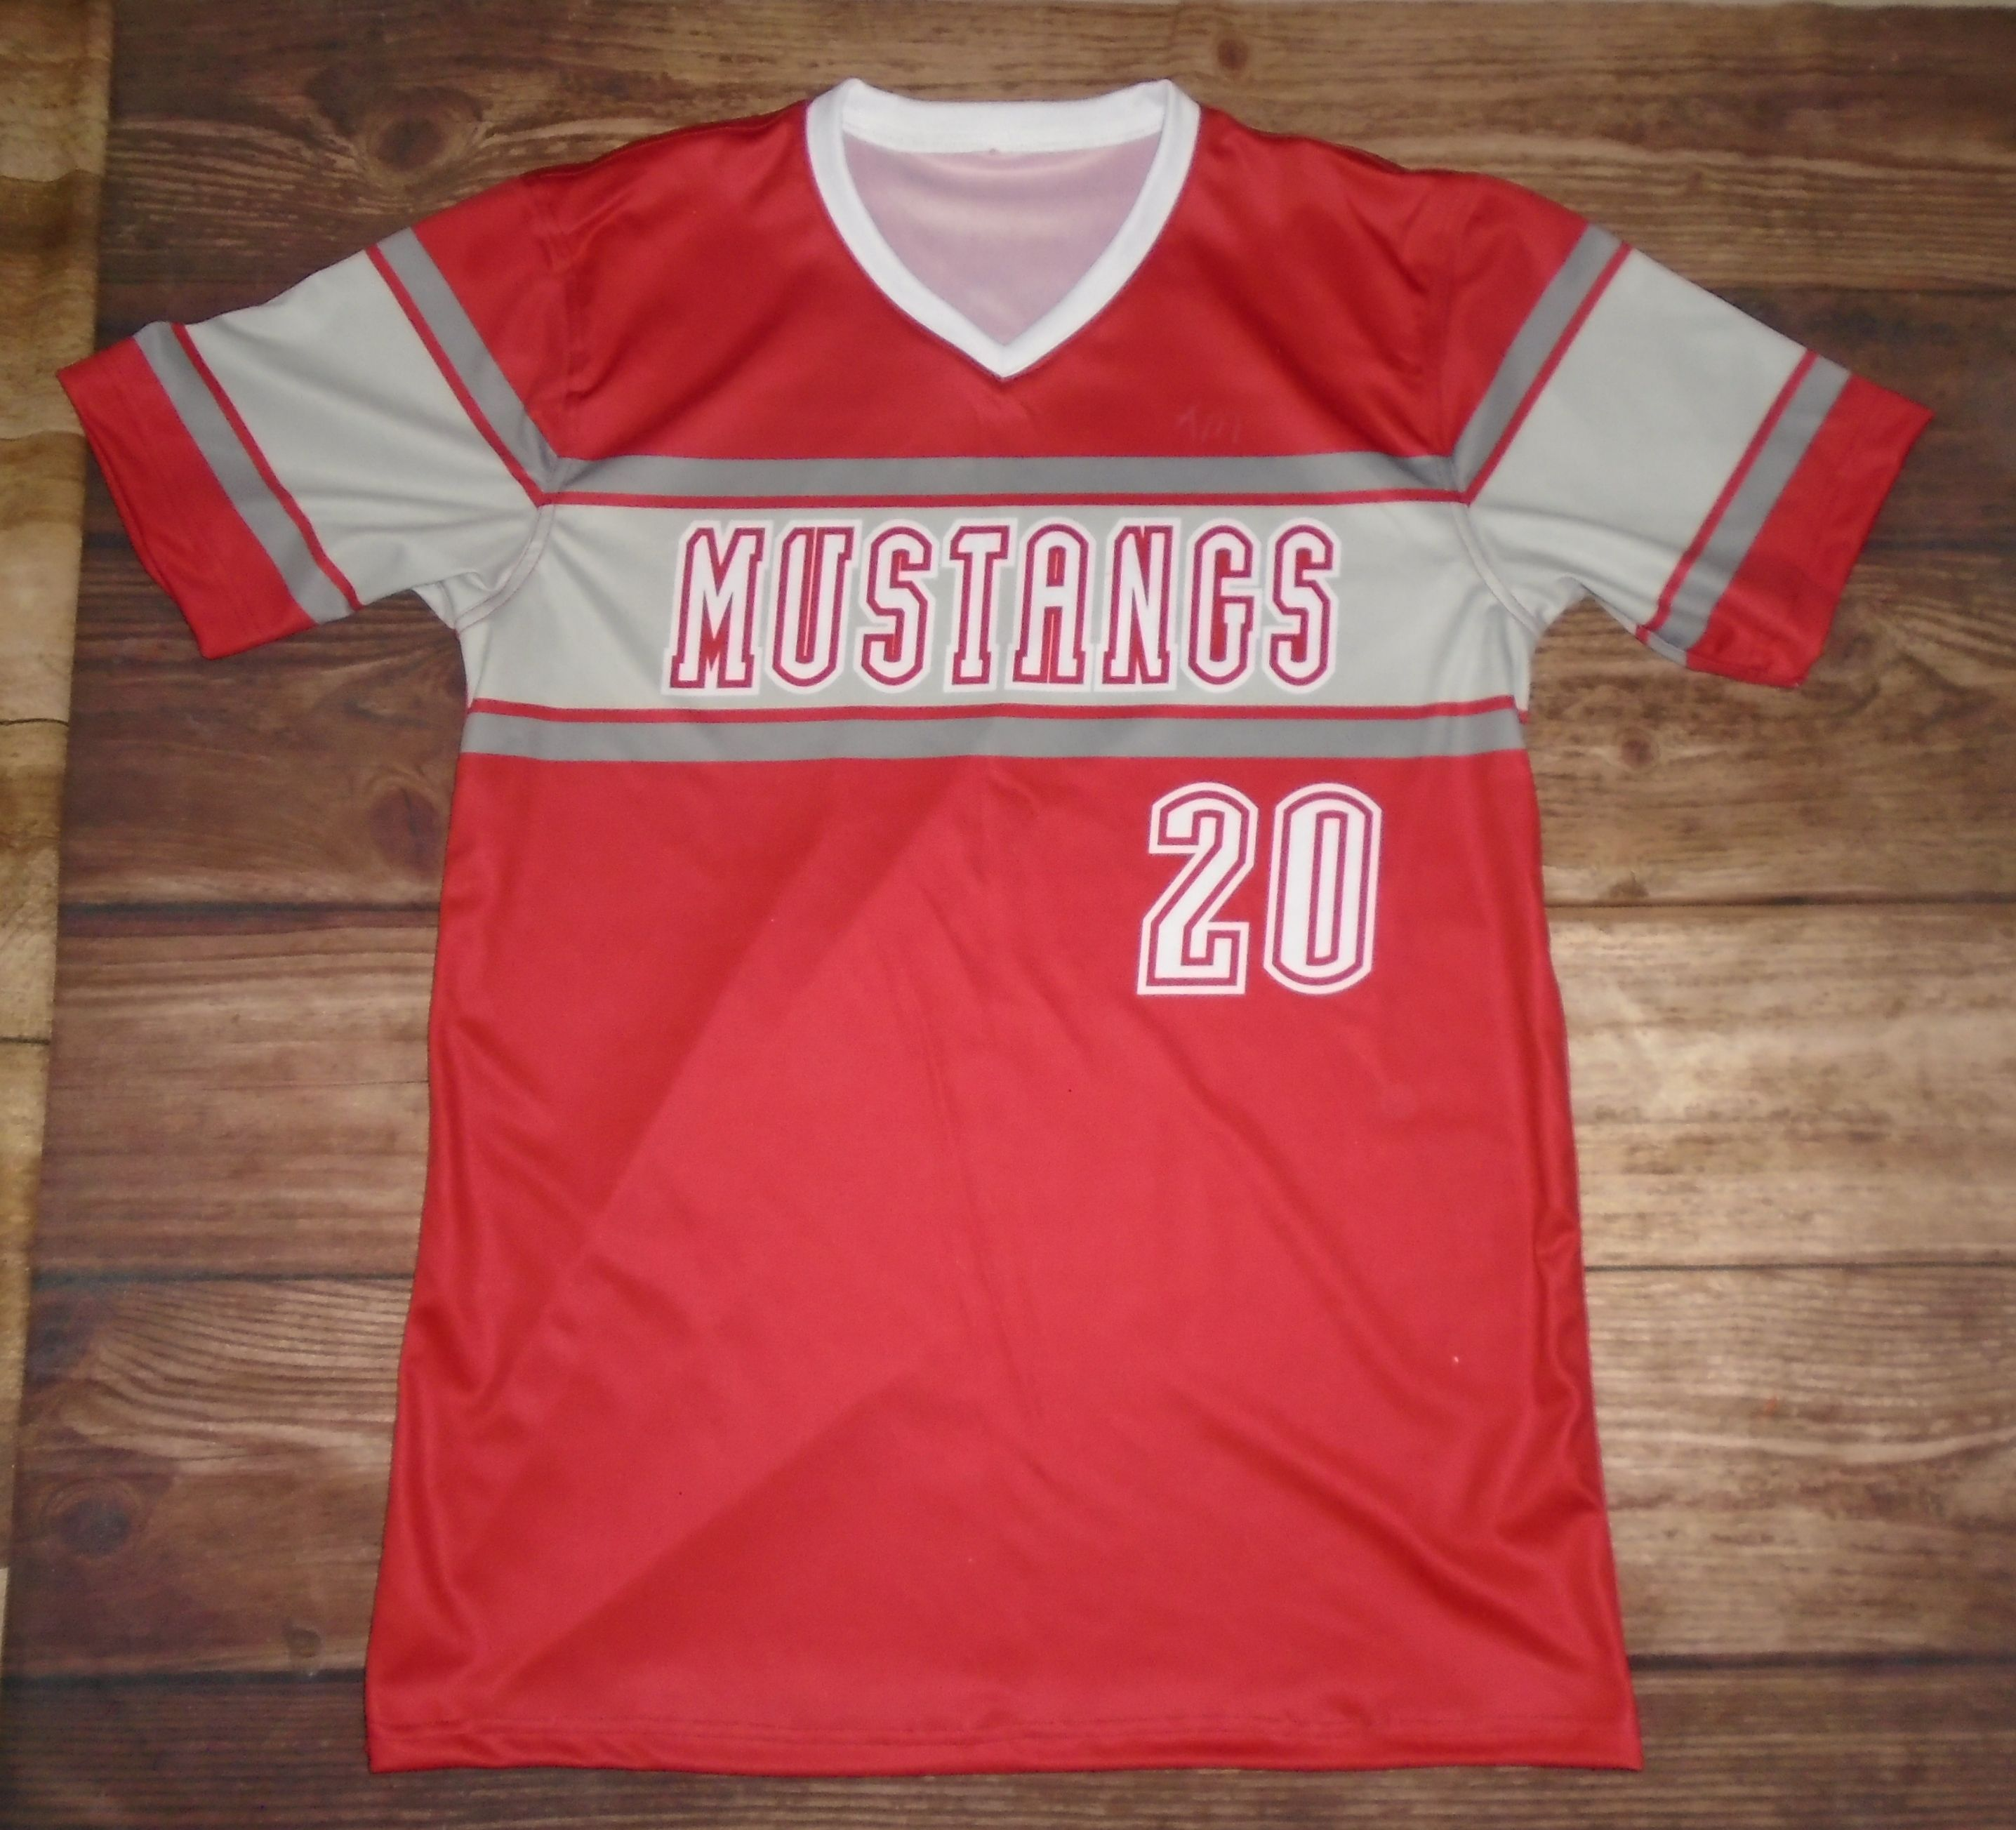 fe5632fd6 Take a look at these custom jerseys designed by Chisum Mustangs Baseball  and created at Kings Sports And Awards in Paris